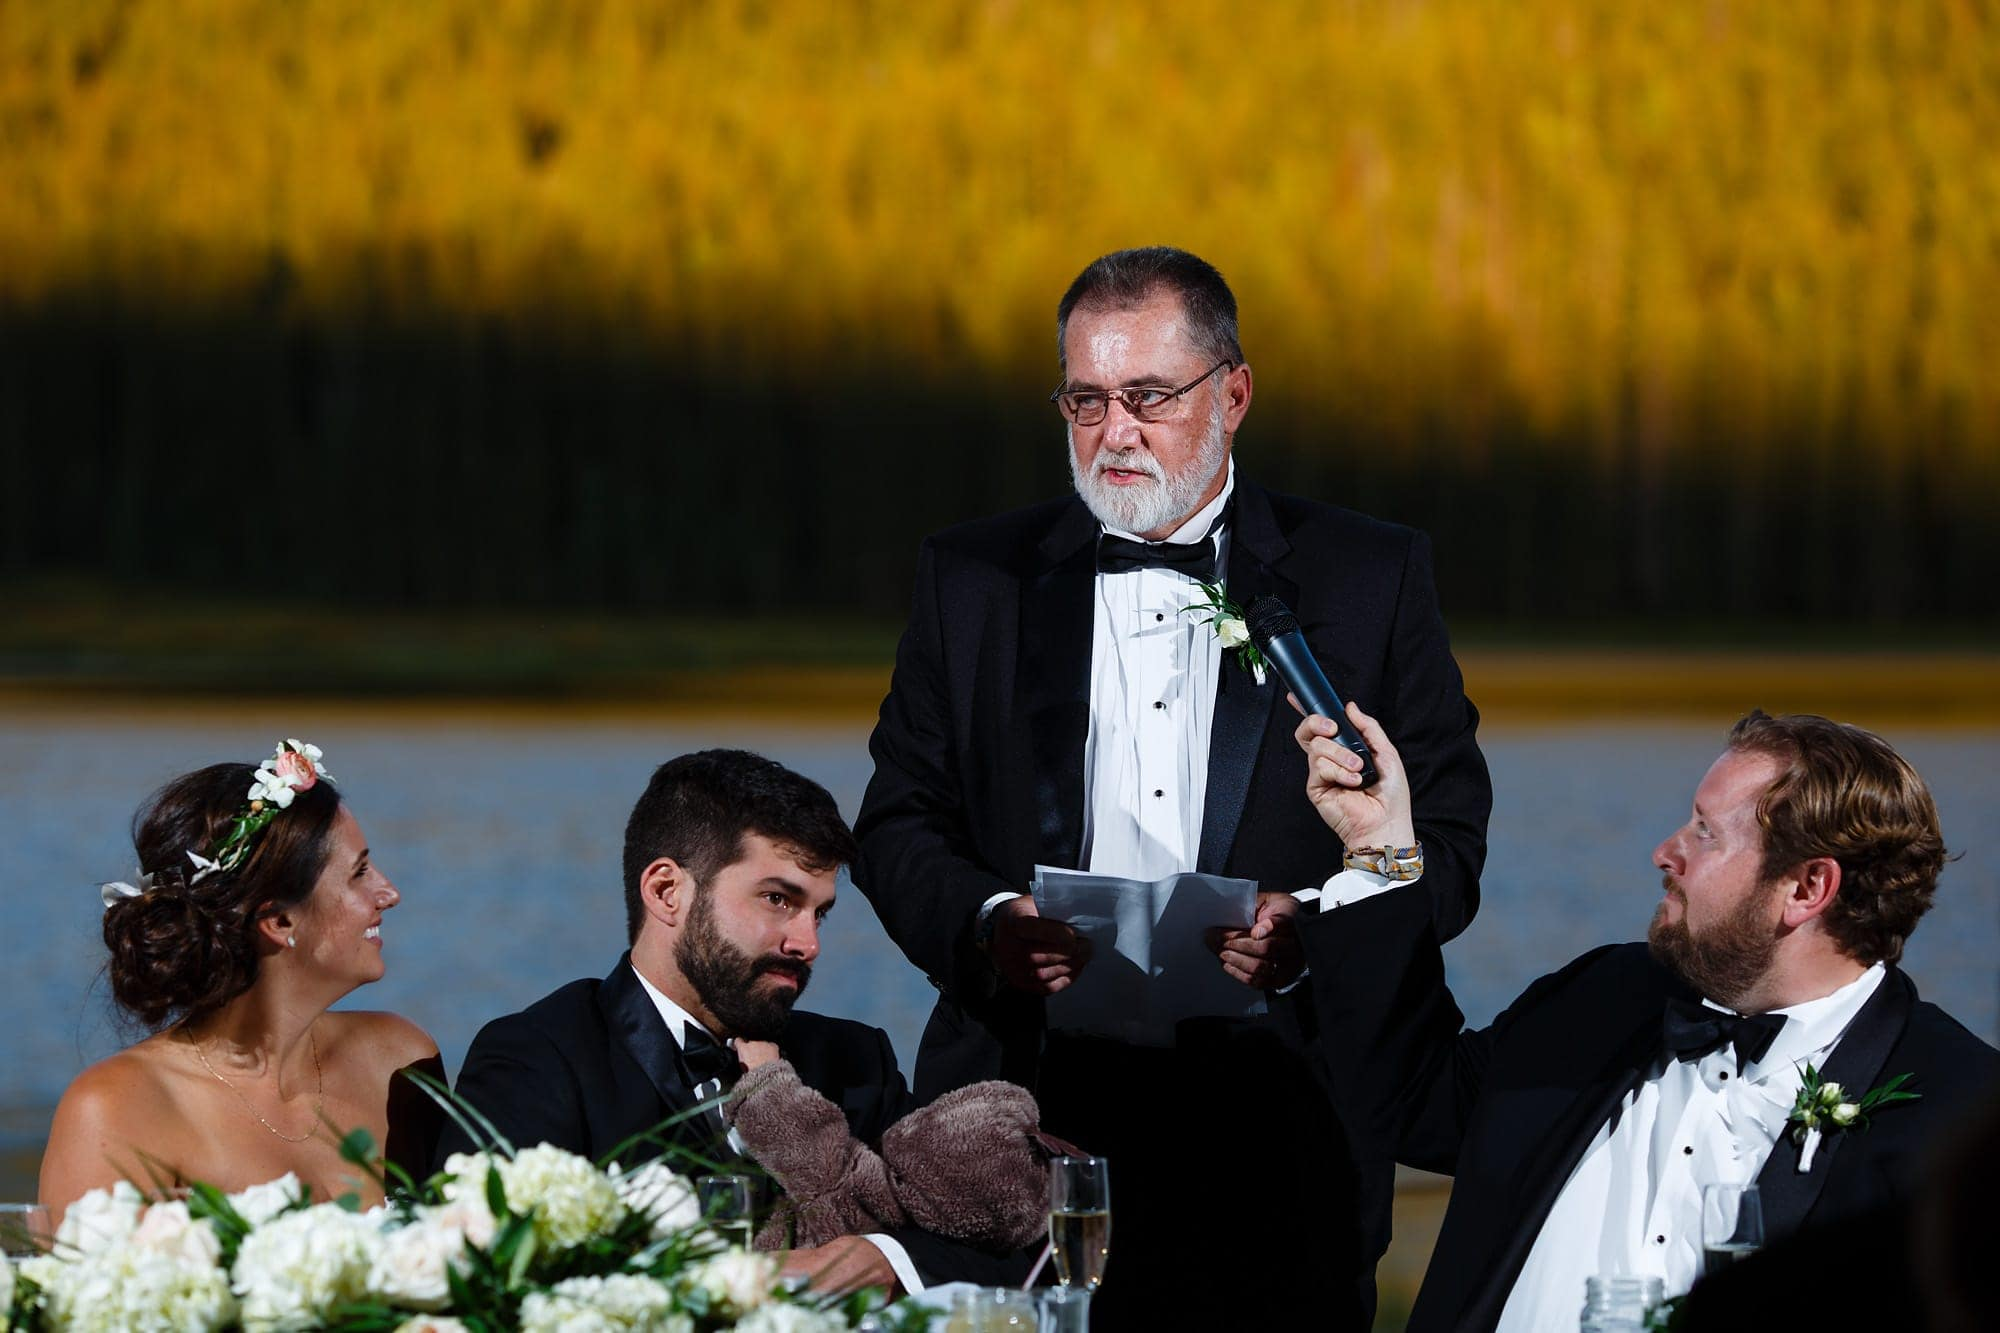 The Father of the bride gives a speech during the reception at Piney River Ranch.